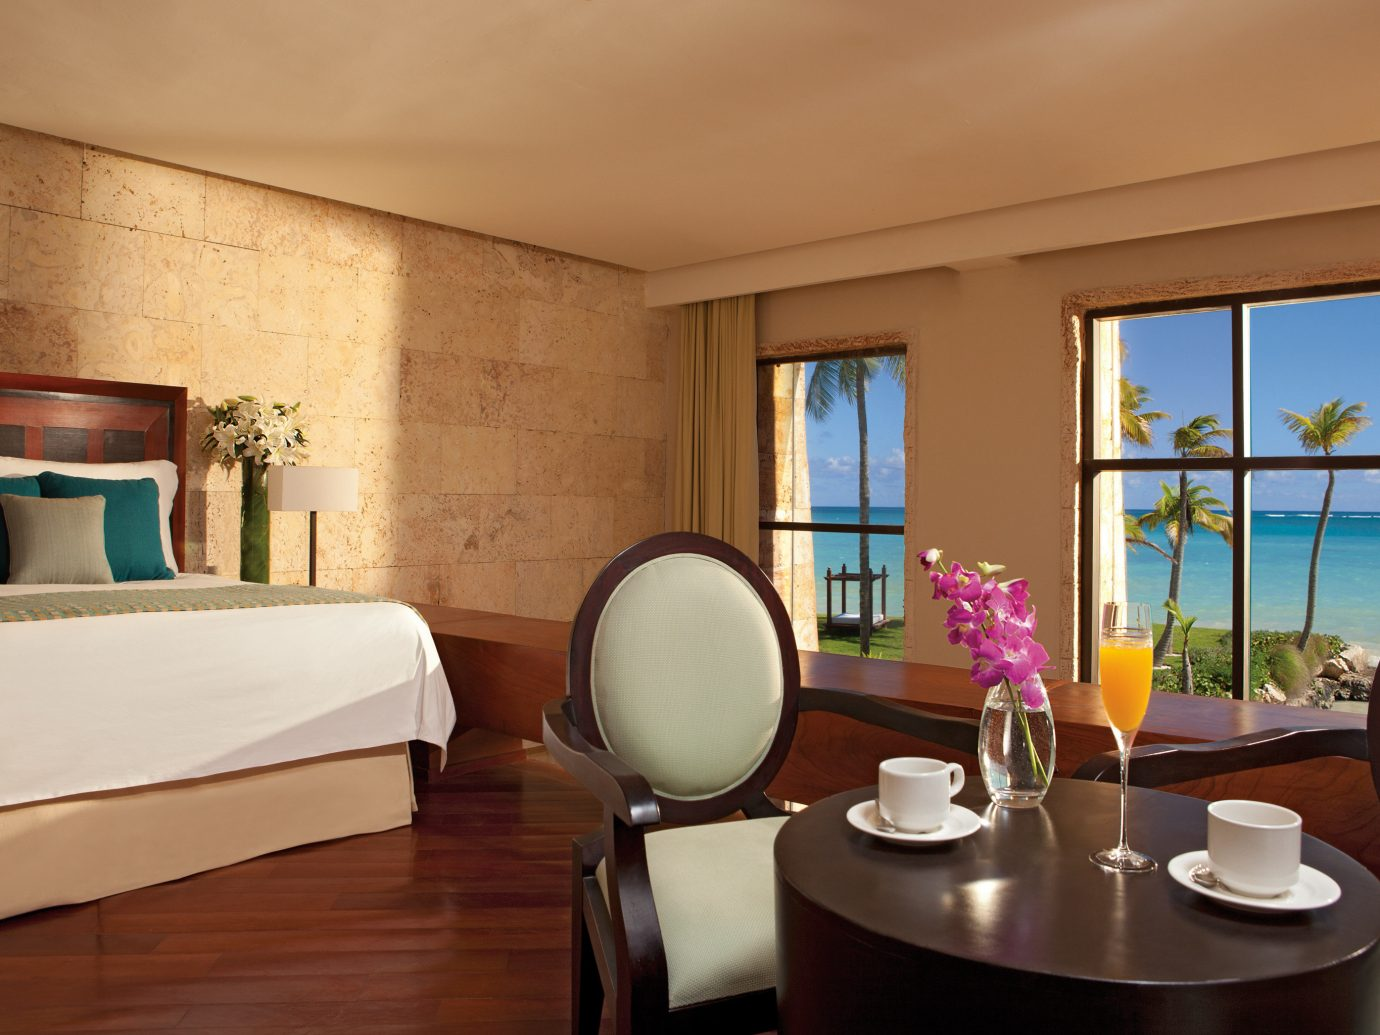 Bedroom At Sanctuary Cap Cana, An All Inclusive Adults Only Hotel